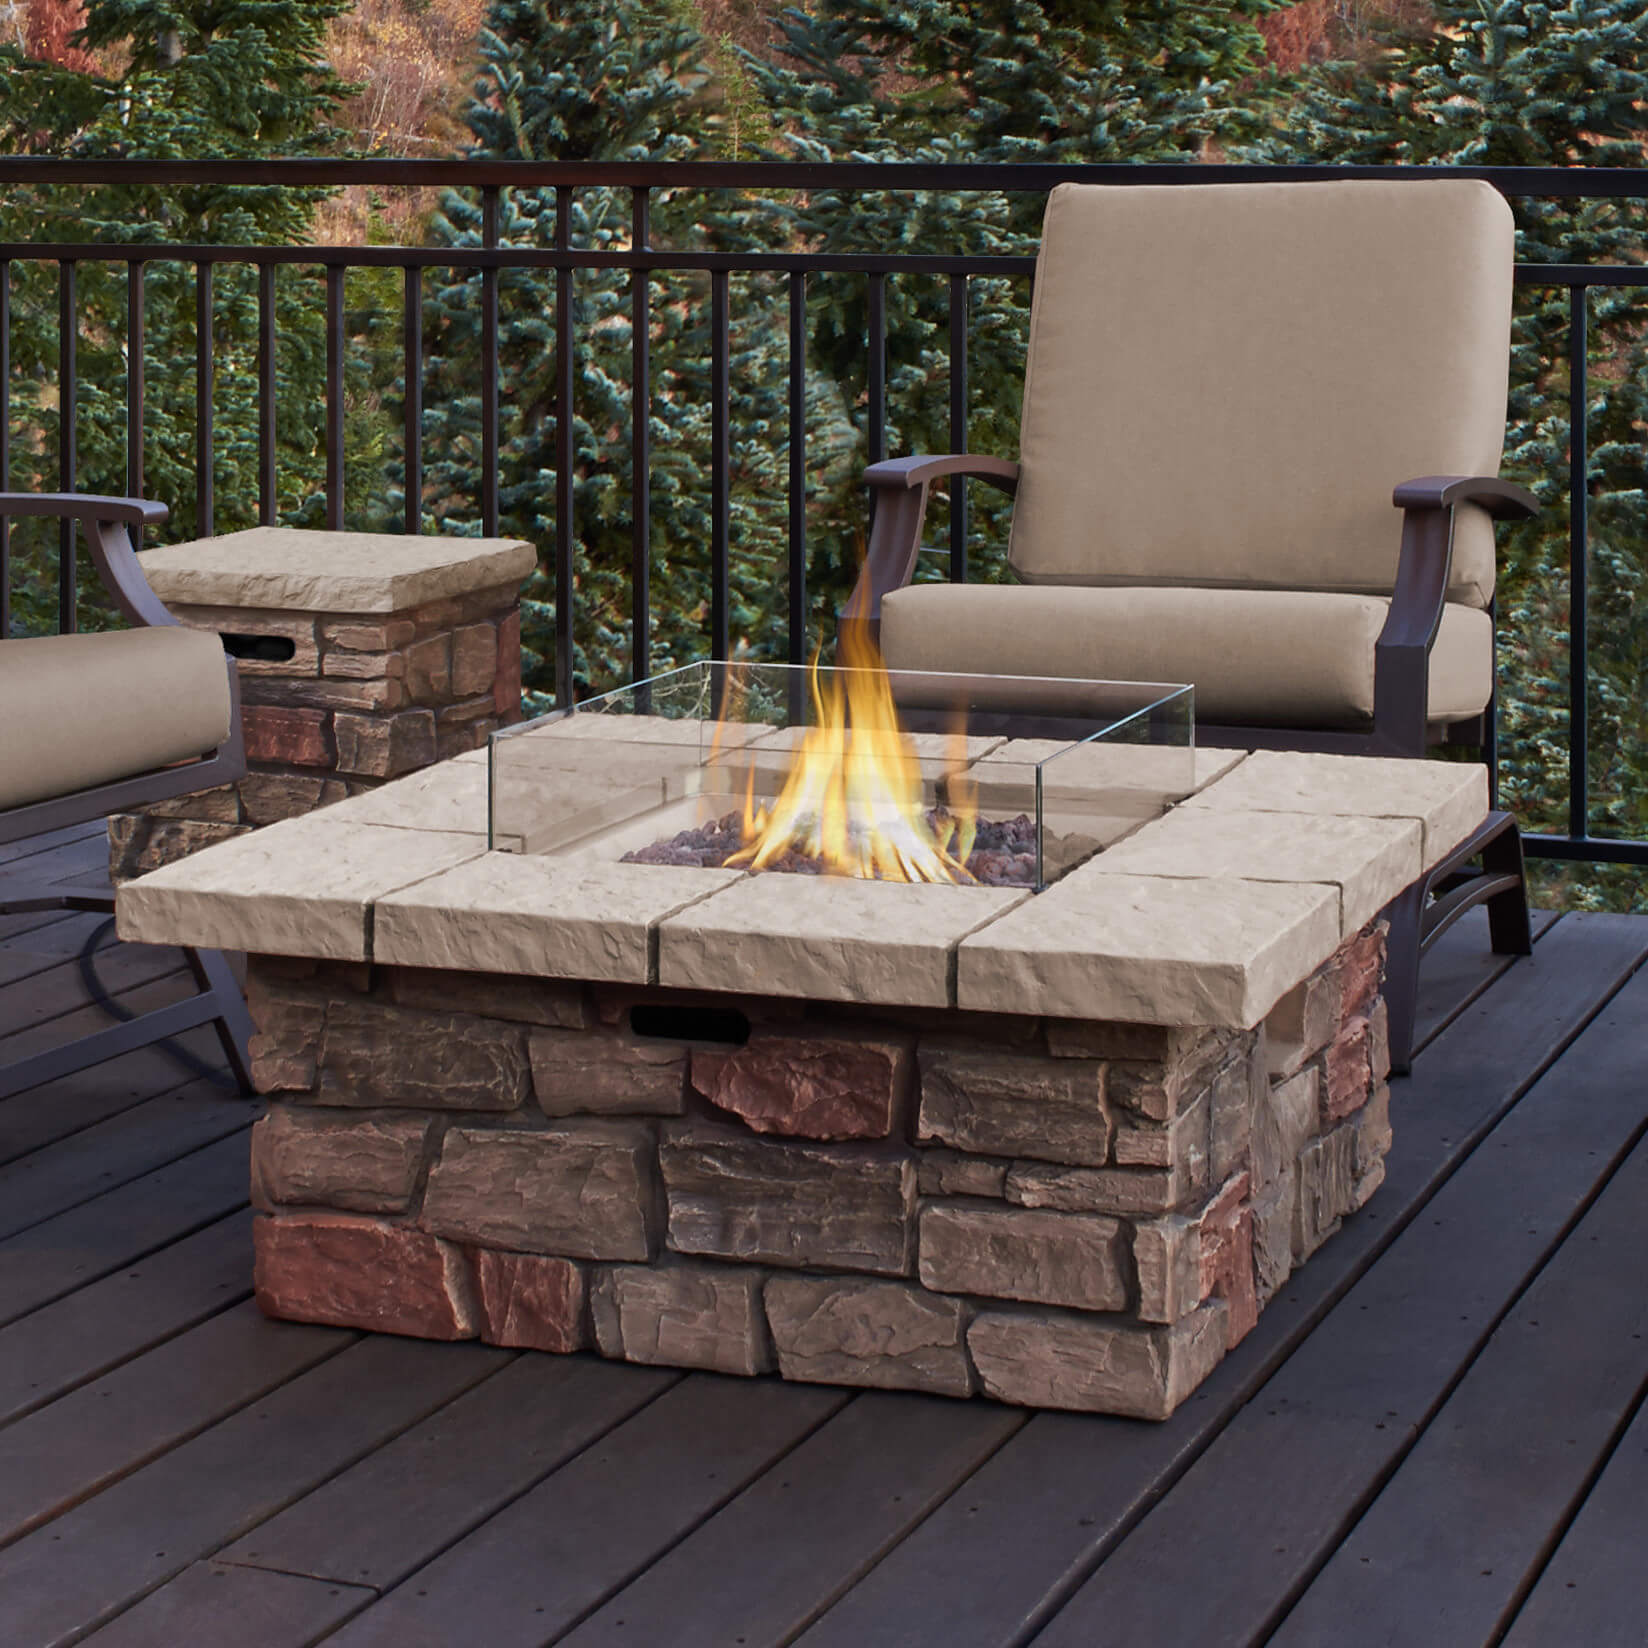 Image of: Top 15 Types Of Propane Patio Fire Pits With Table Buying Guide